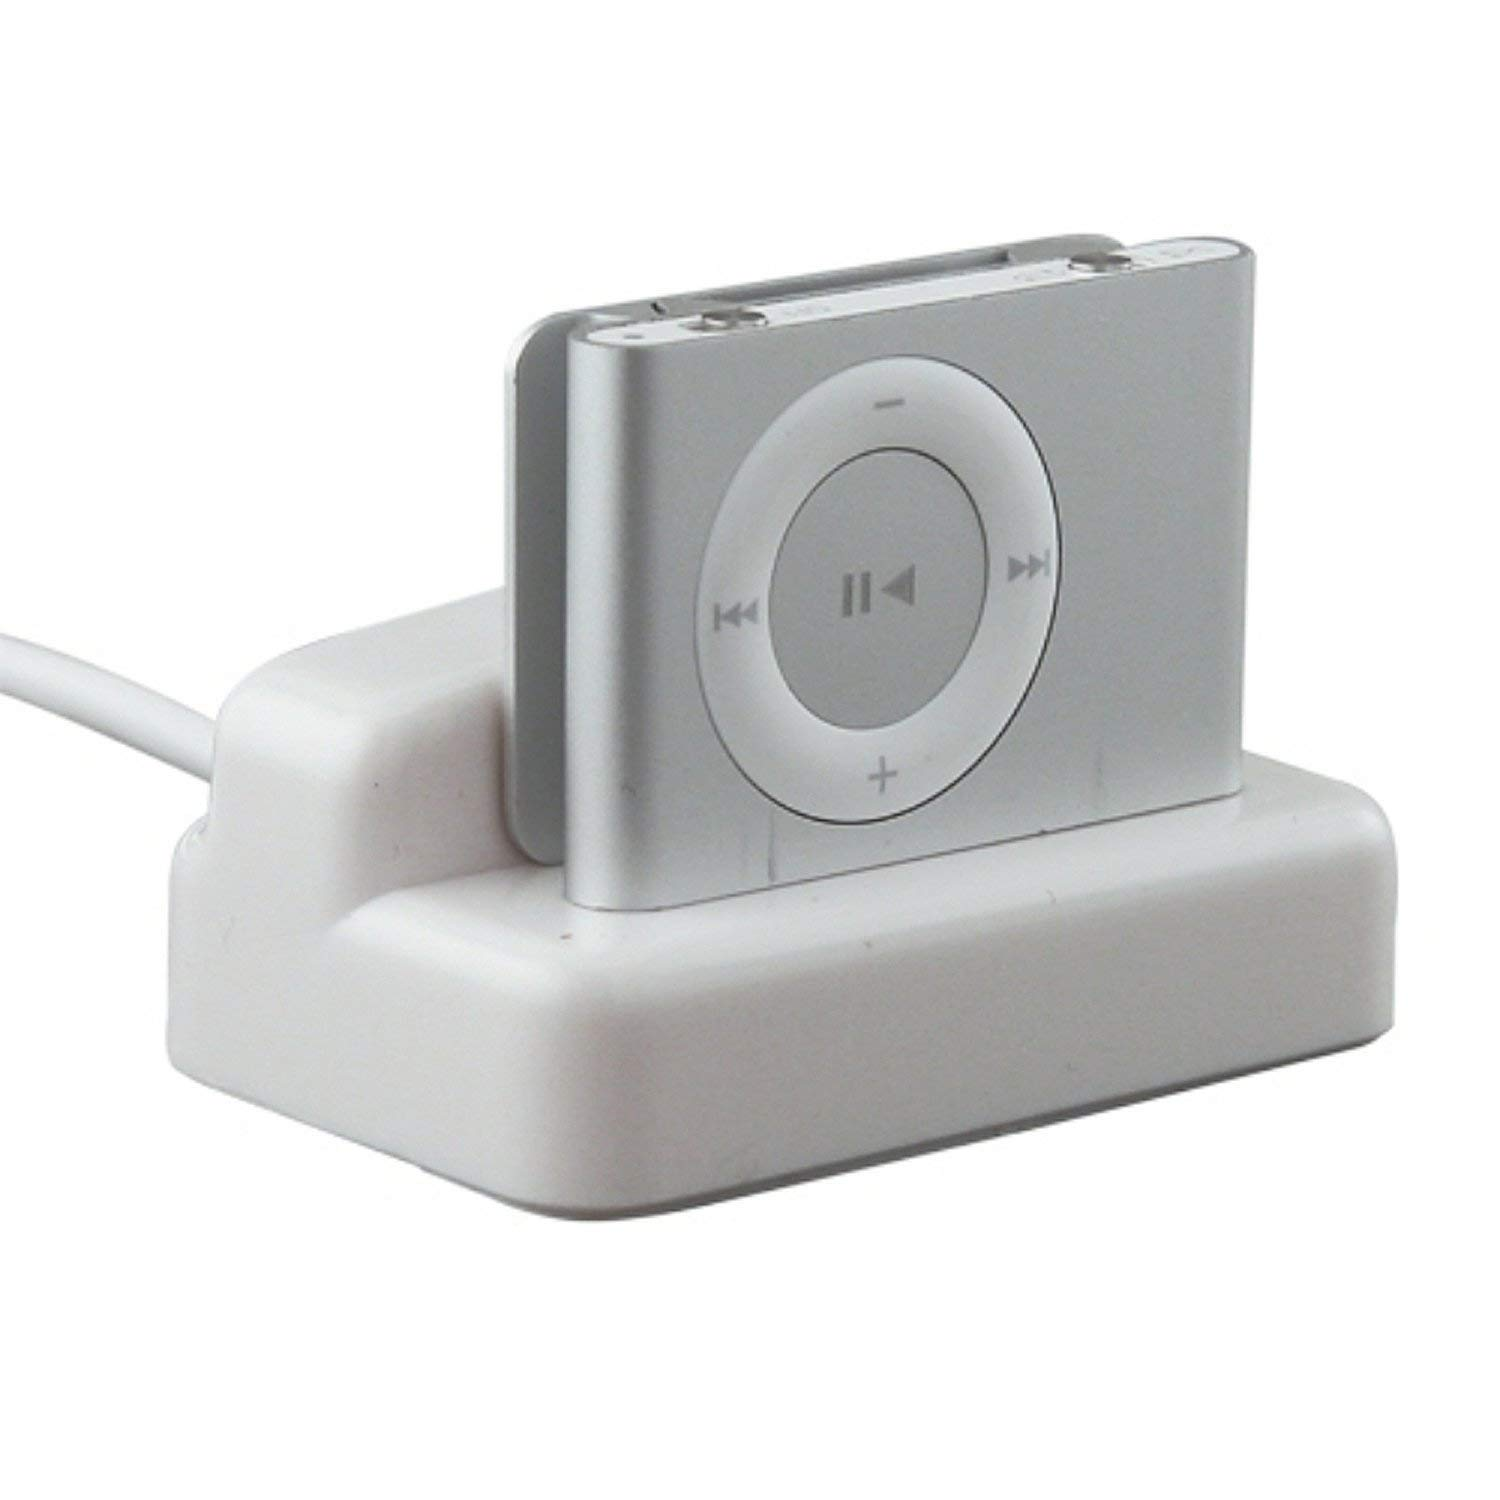 Bargaincell USB Hotsync & Charging Dock Cradle Desktop Charger for Apple iPod Shuffle 2nd Generation MP3 Player